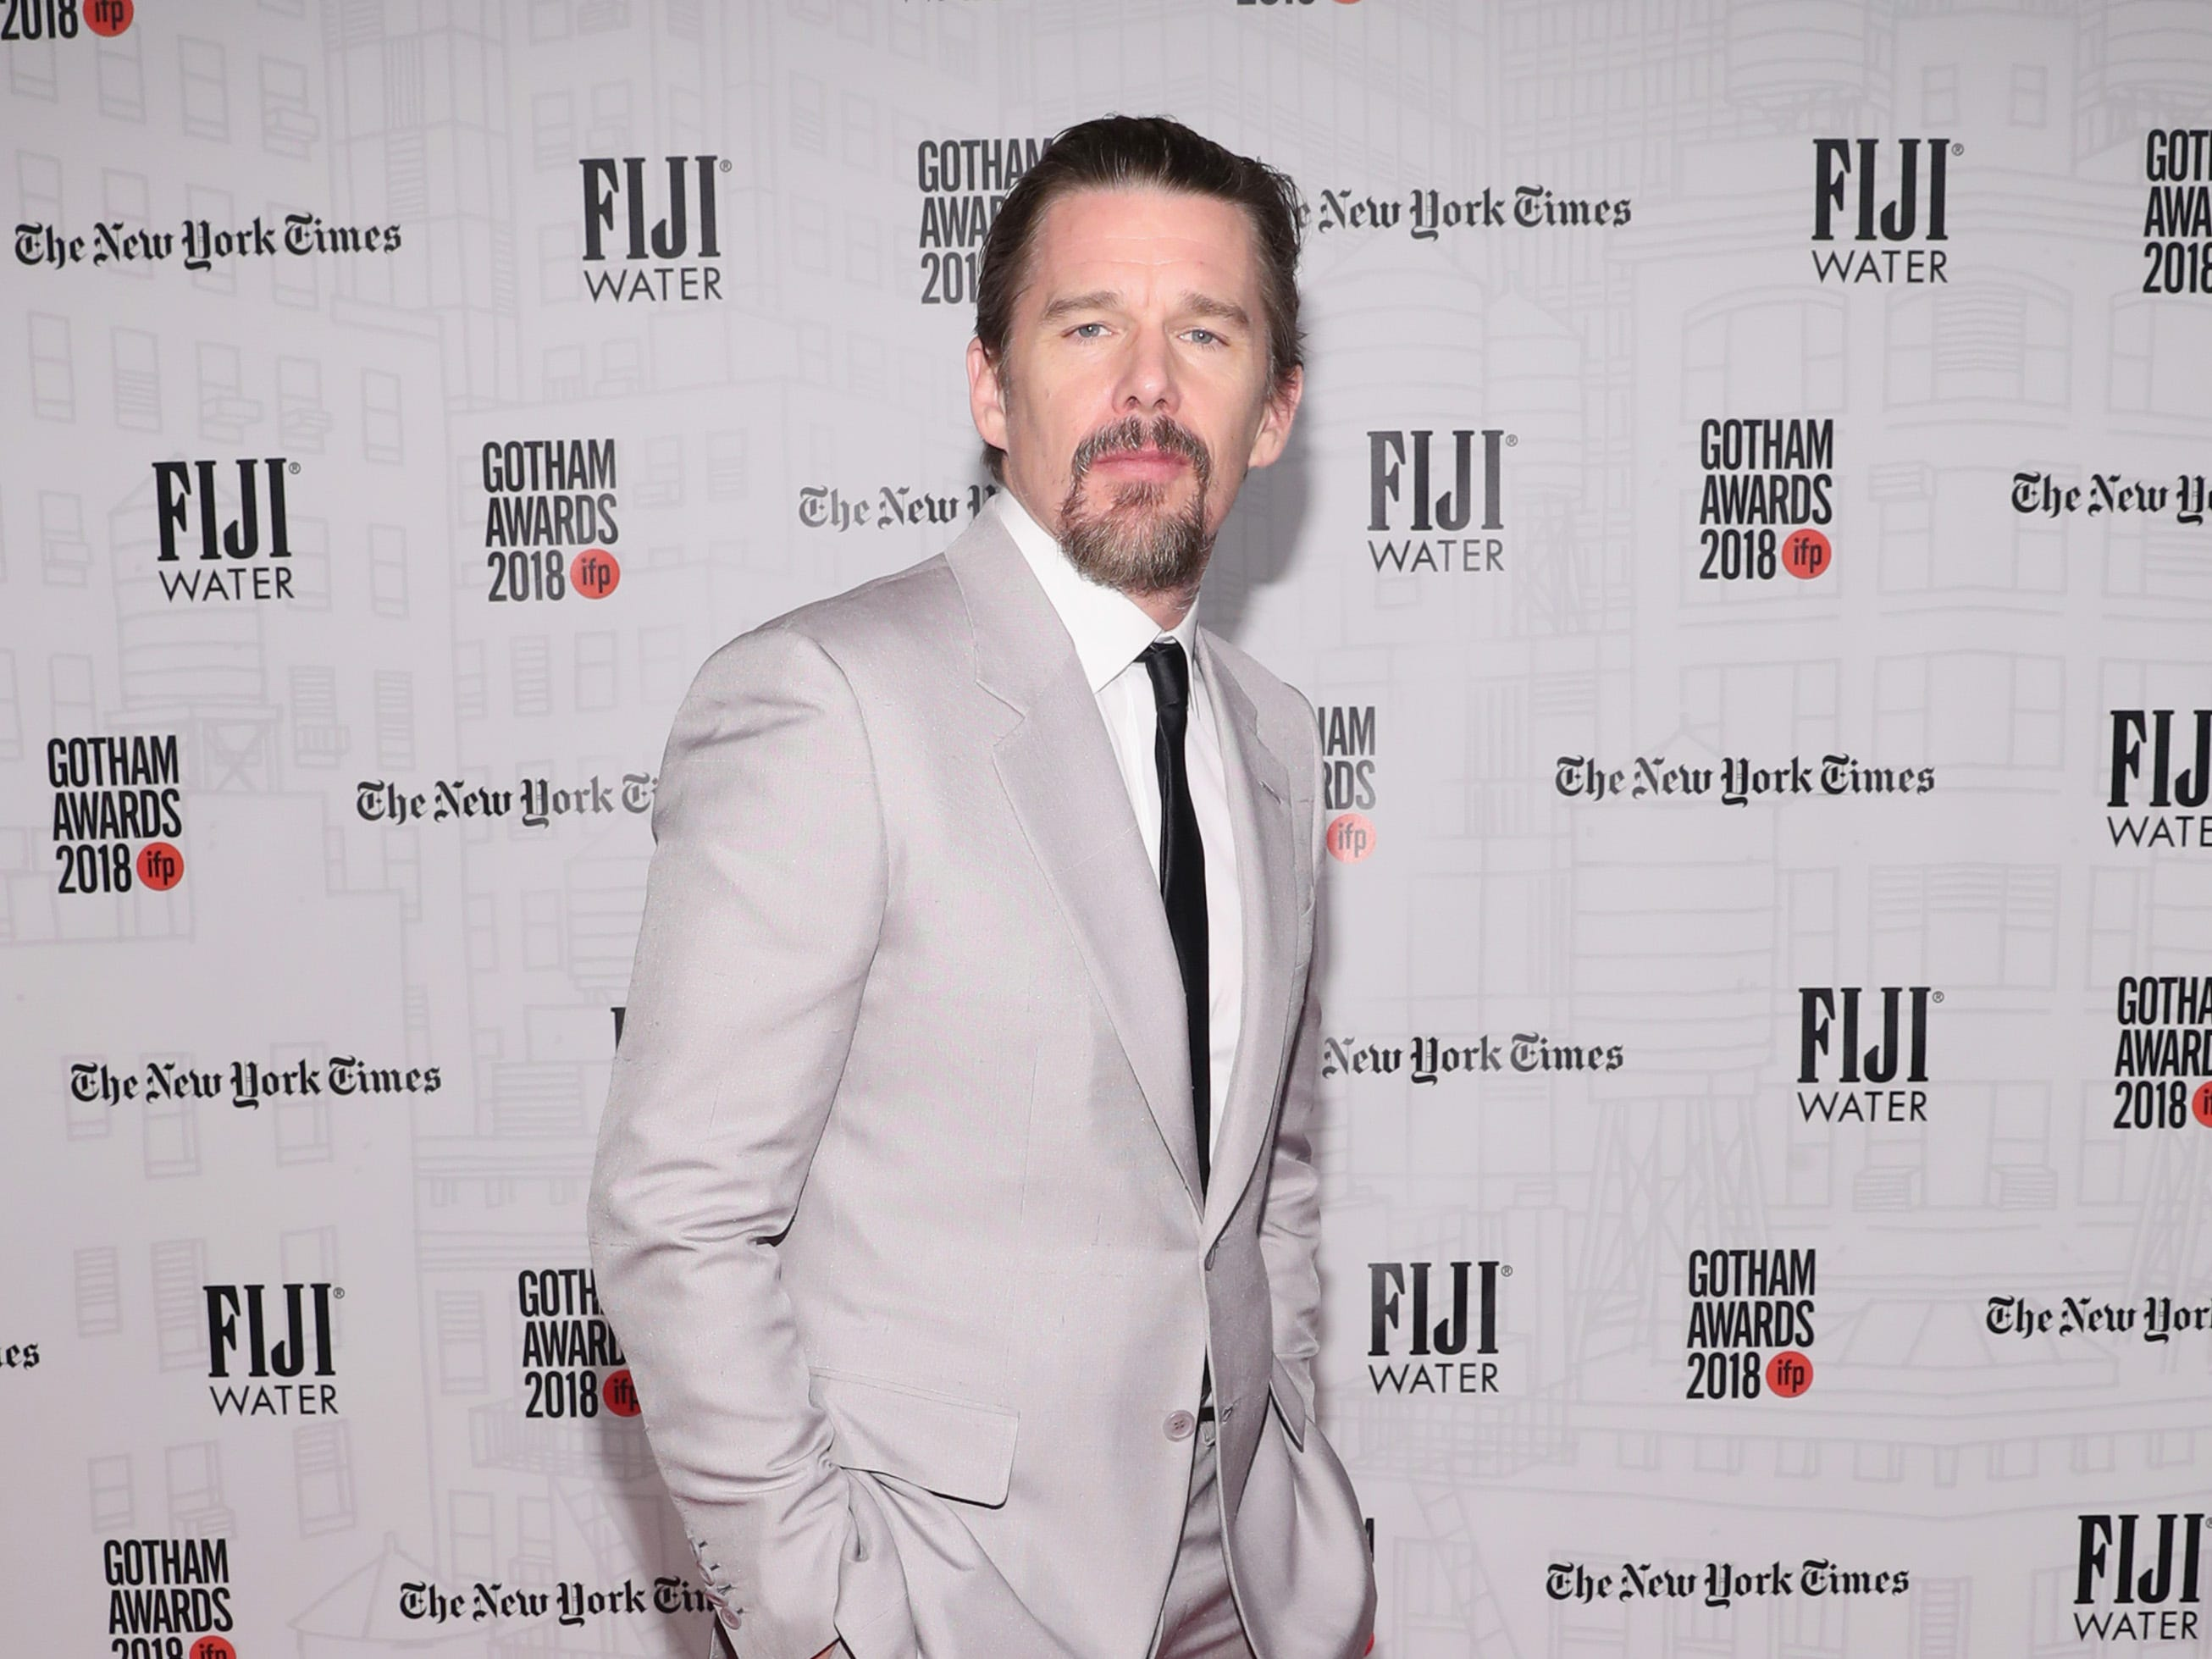 NEW YORK, NY - NOVEMBER 26:  Ethan Hawke attends the 2018 IFP Gotham Awards with FIJI Water at Cipriani, Wall Street on November 26, 2018 in New York City.  (Photo by Cindy Ord/Getty Images for FIJI Water) ORG XMIT: 775261572 ORIG FILE ID: 1065552222